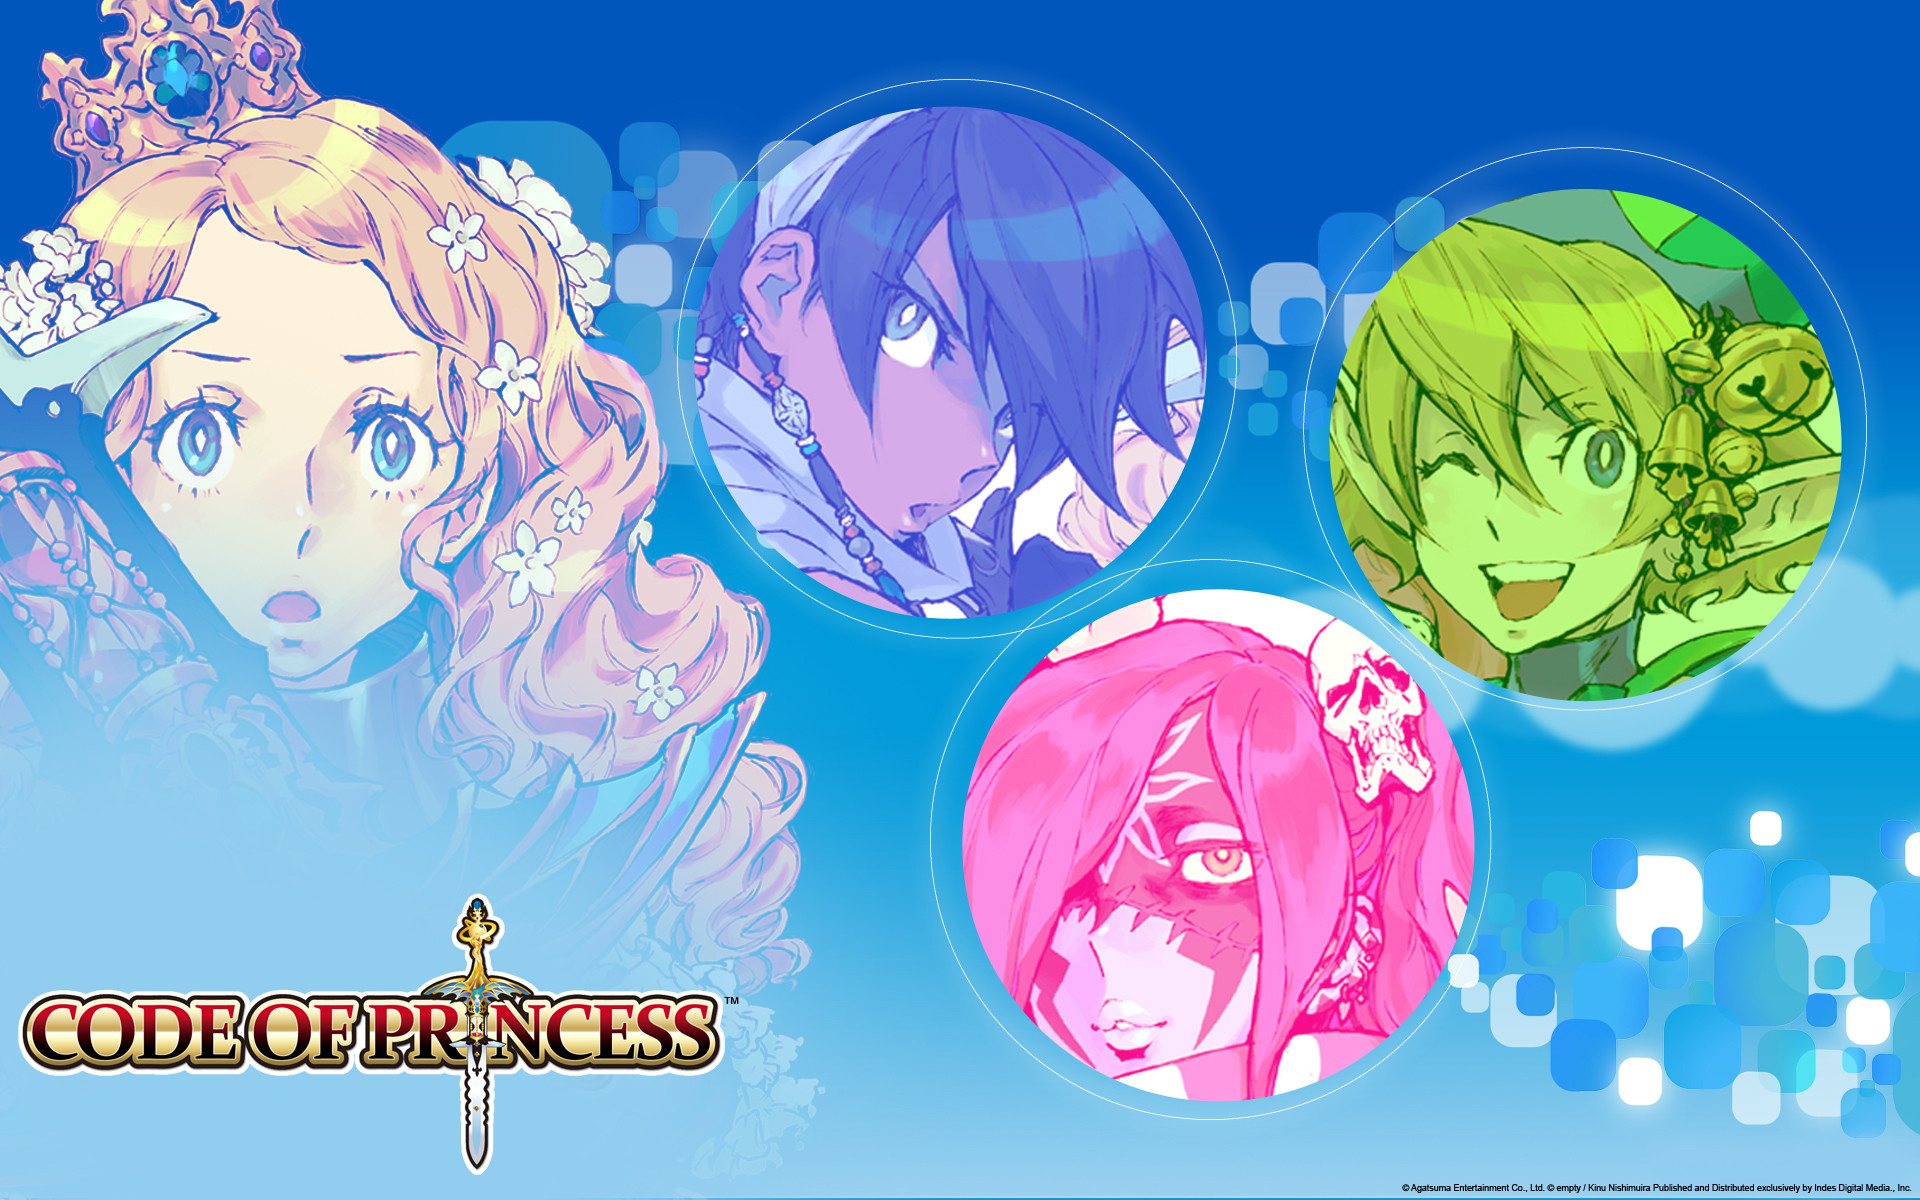 Code of Princess, the 3D beat-em-up/RPG for Nintendo 3DS! Available Now.